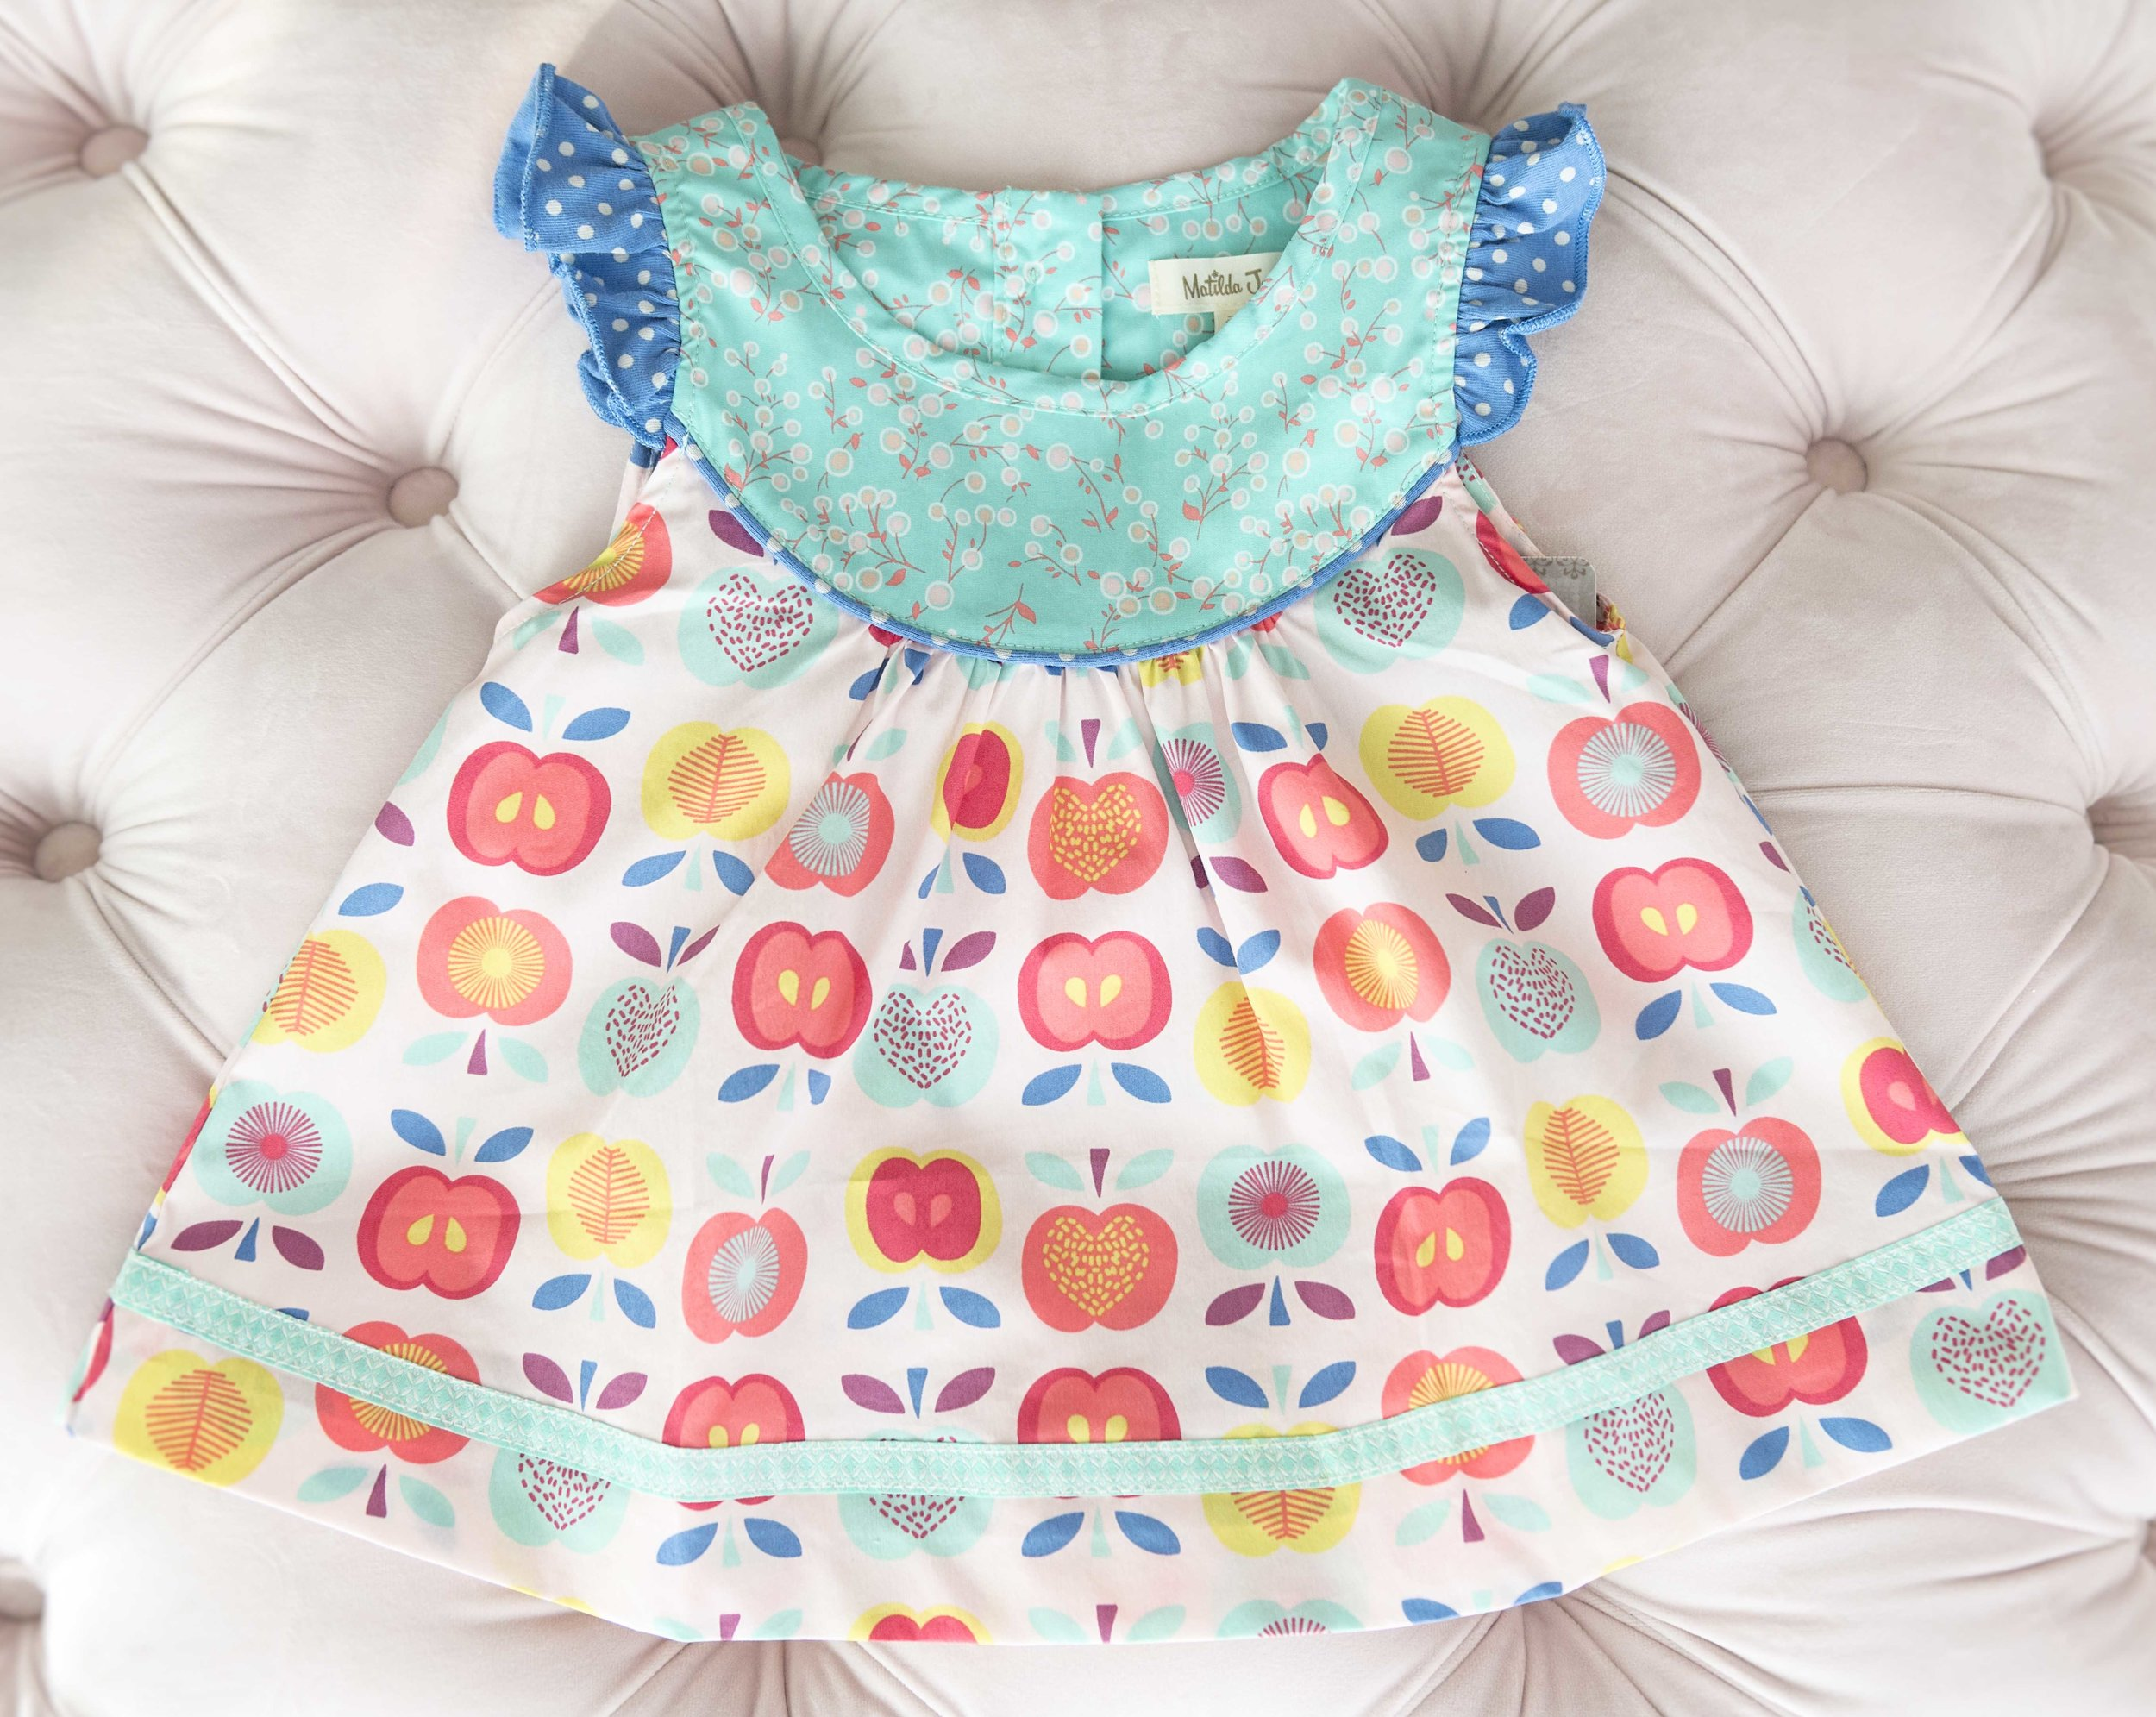 We have several darling Matilda Jane Clothing dresses in our studio for your use including this precious apple print dress.